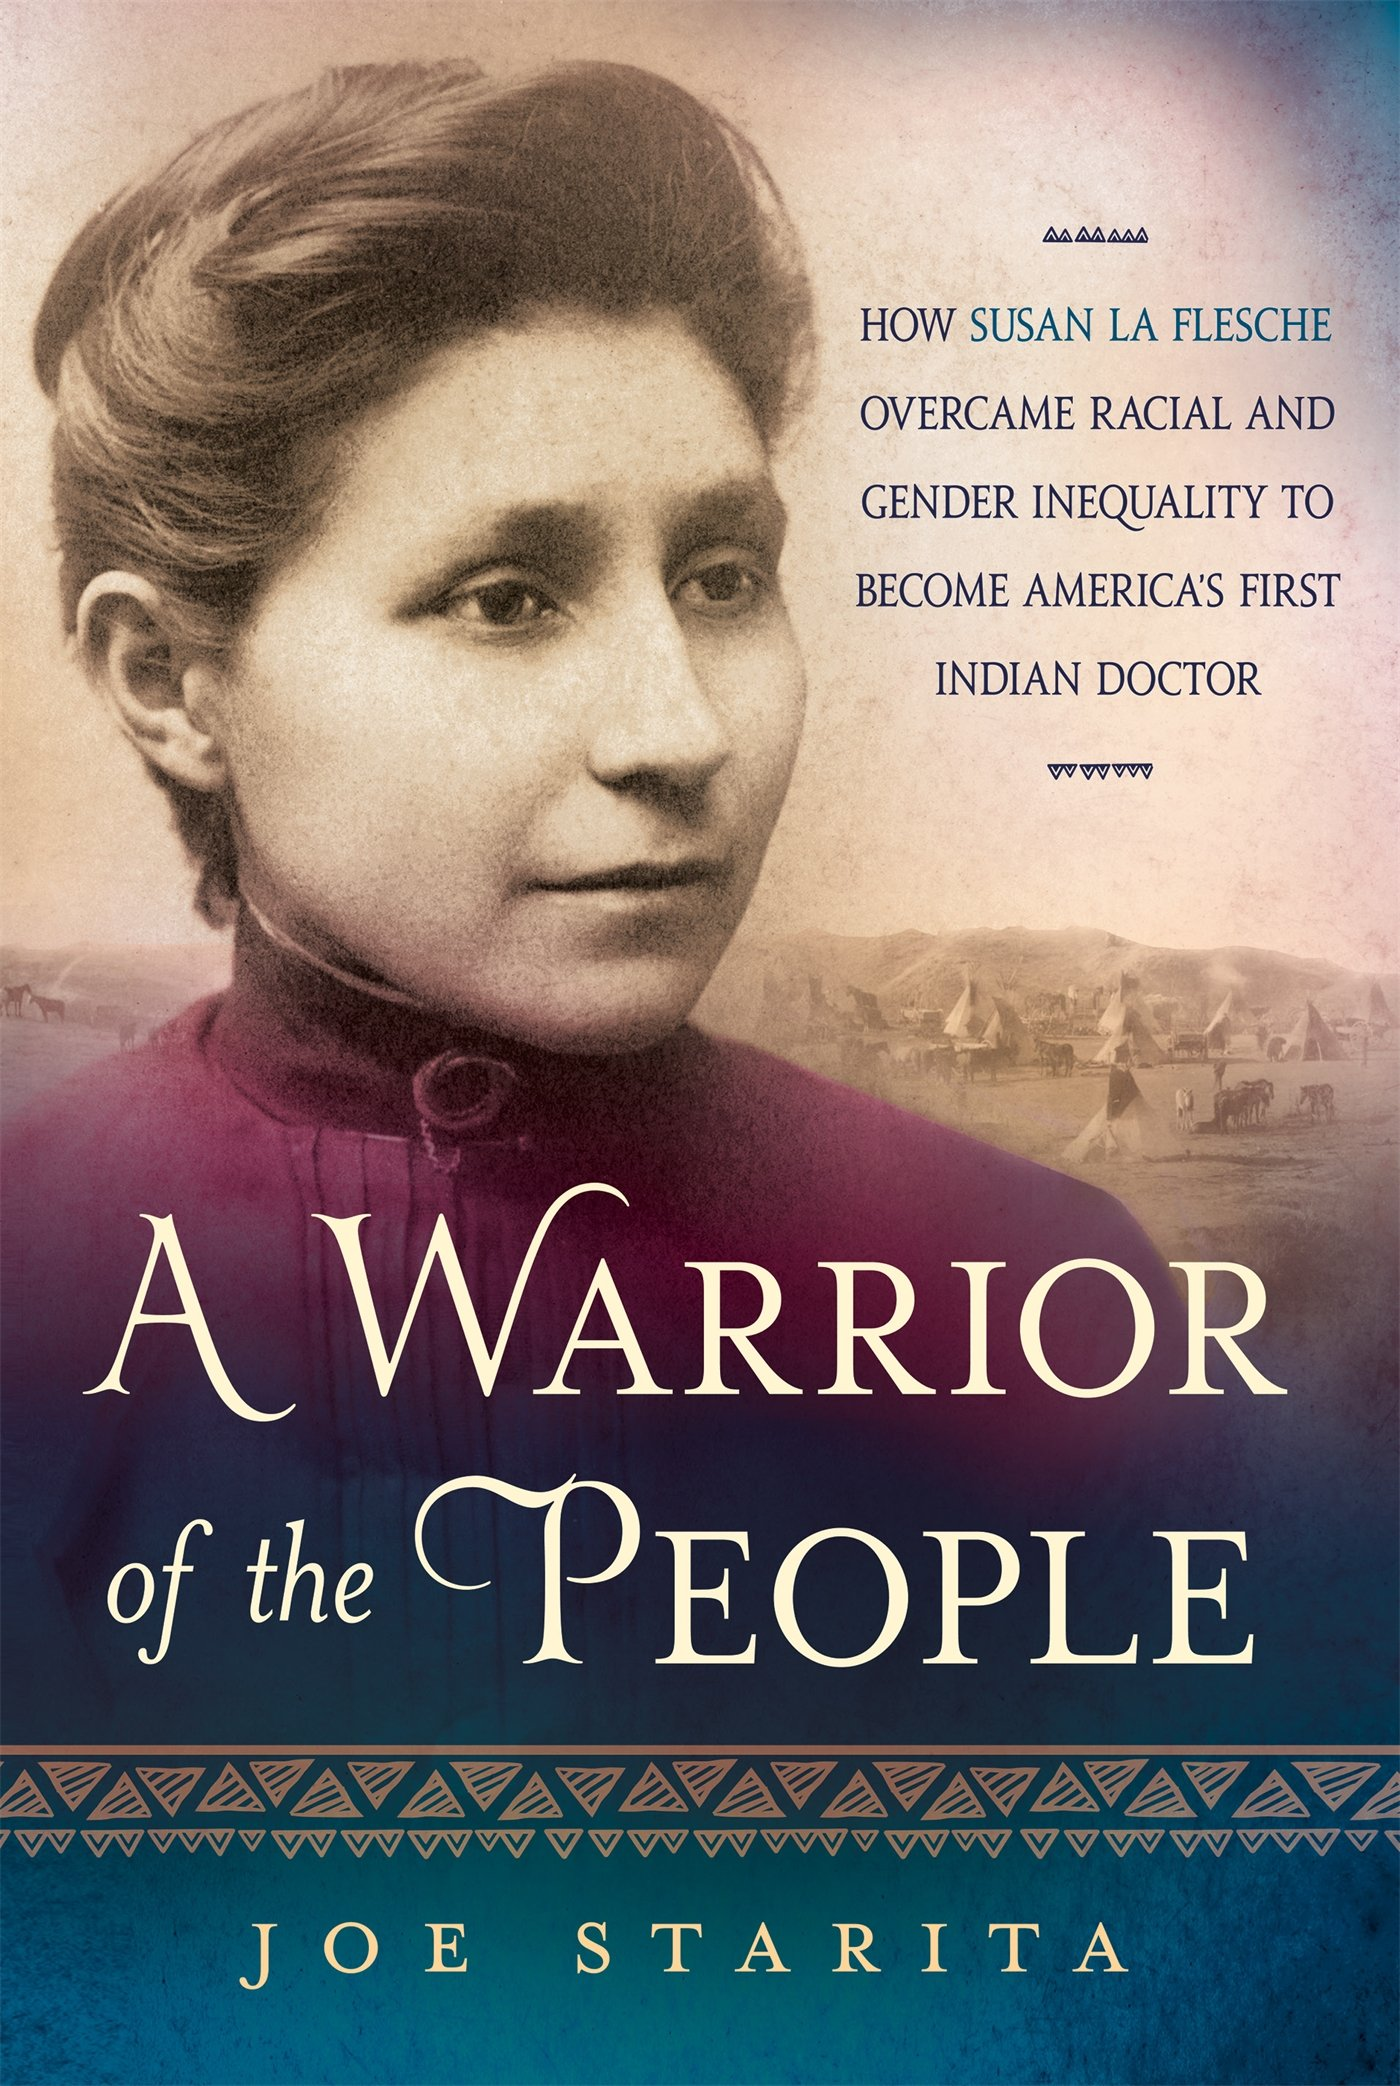 A Warrior Of The People: How Susan La Flesche Overcame Racial And Gender  Inequality To Become America's First Indian Doctor: Joe Starita:  9781250085344: